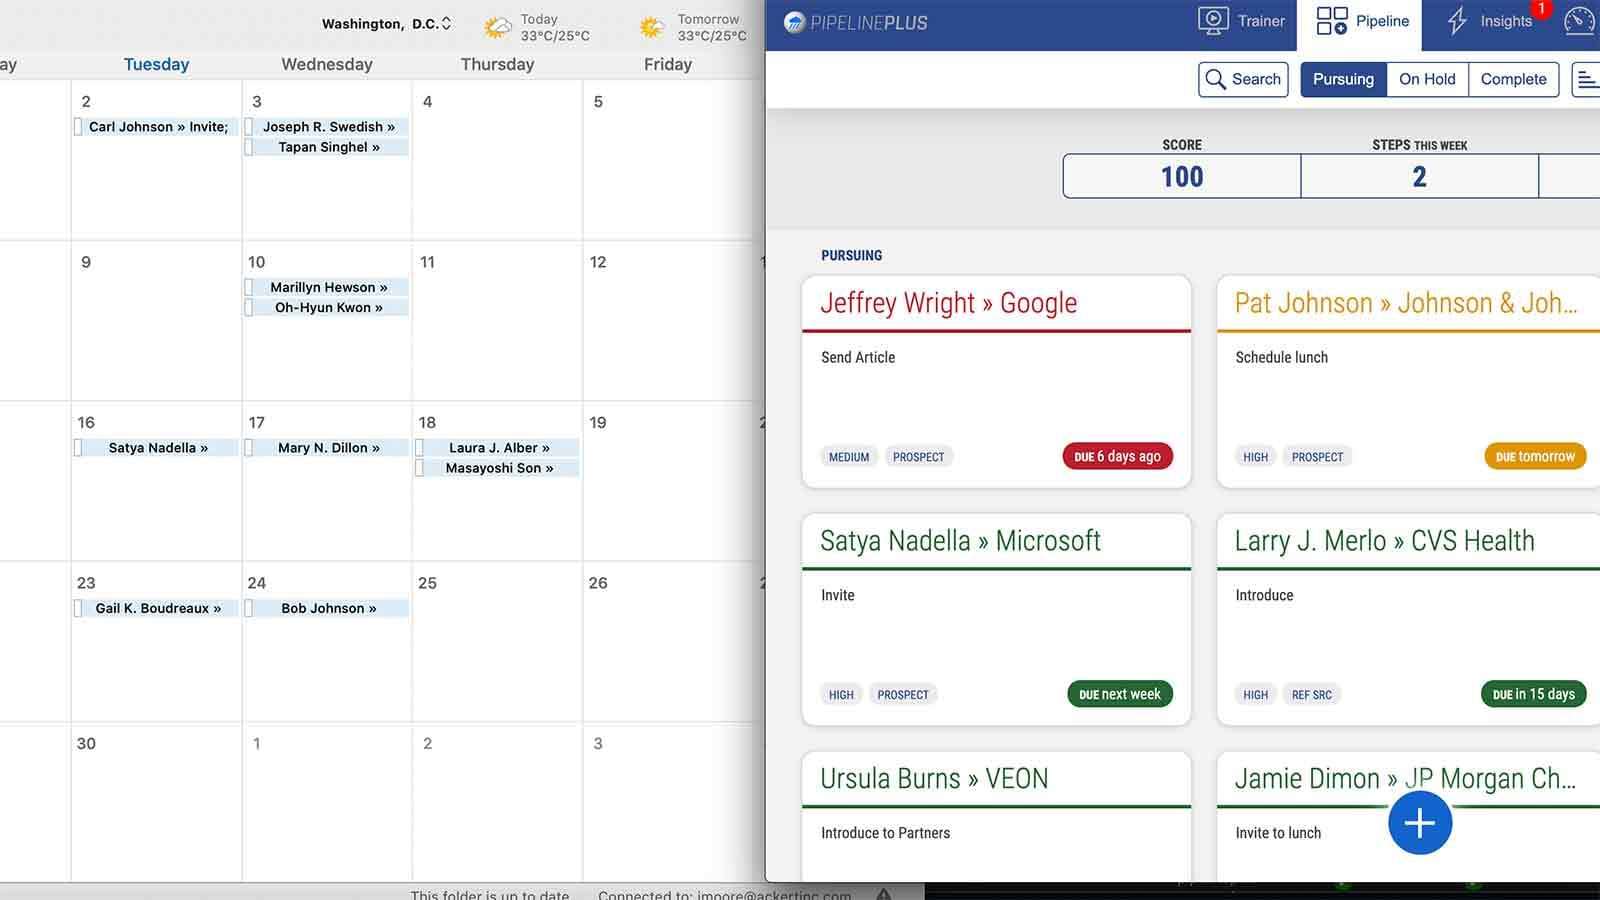 PipelinePlus target dashboard side-by-side with an Outlook calendar matching due dates